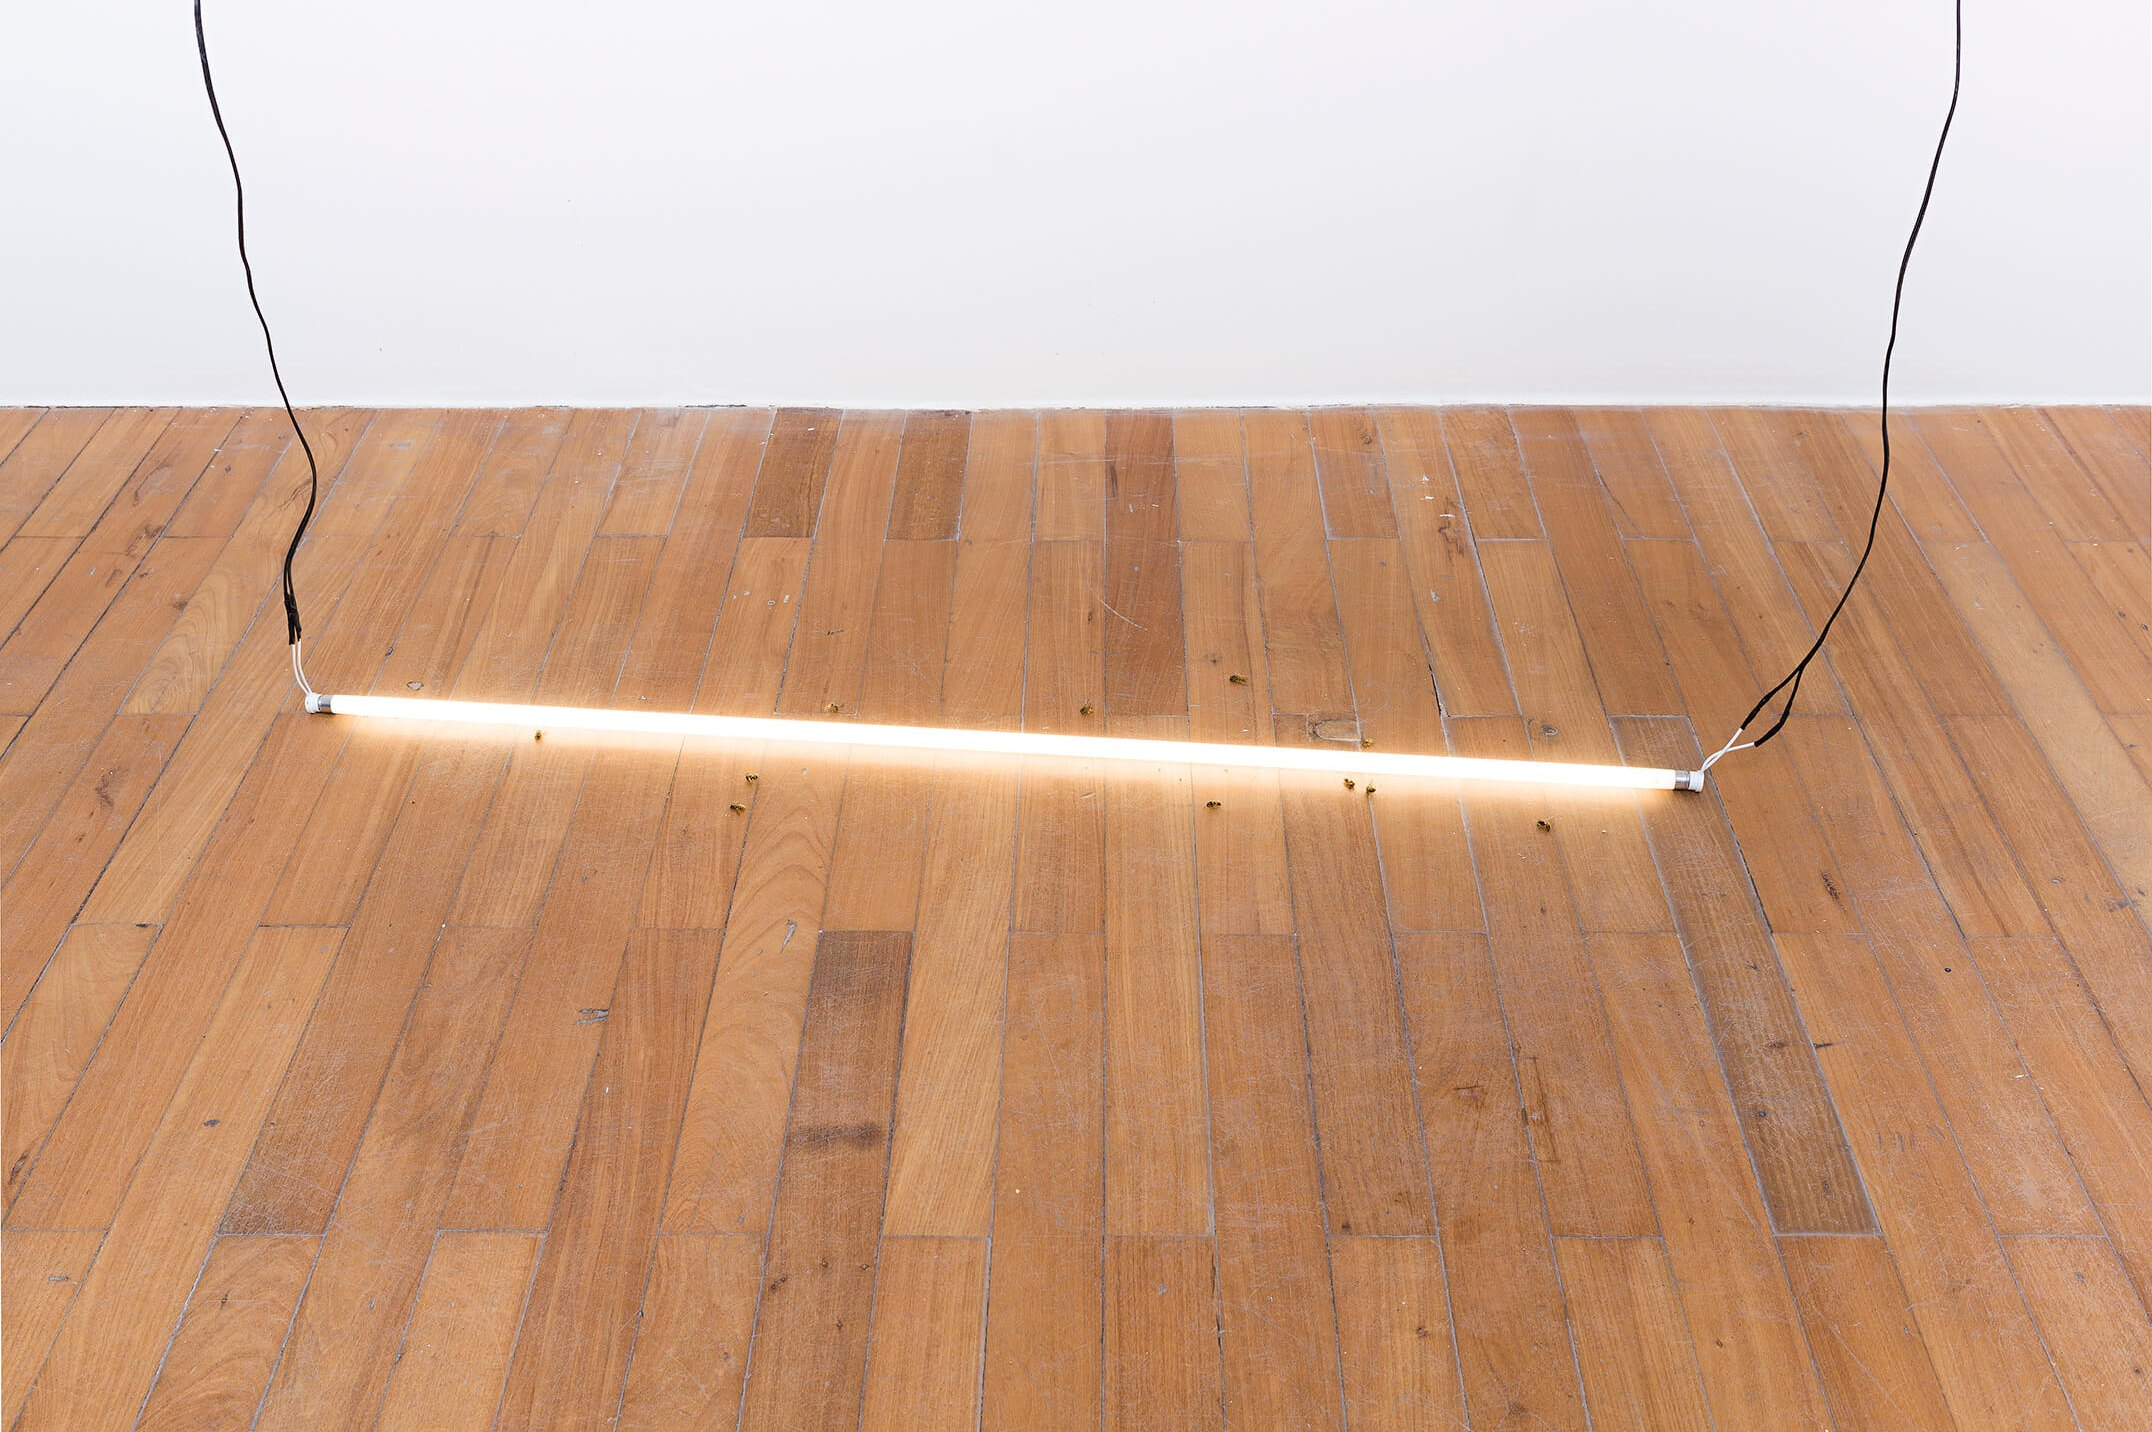 Adriano Amaral, <em>untitled</em>, 2015, lamp displacement, electric wires and wasps, variable dimension - Mendes Wood DM